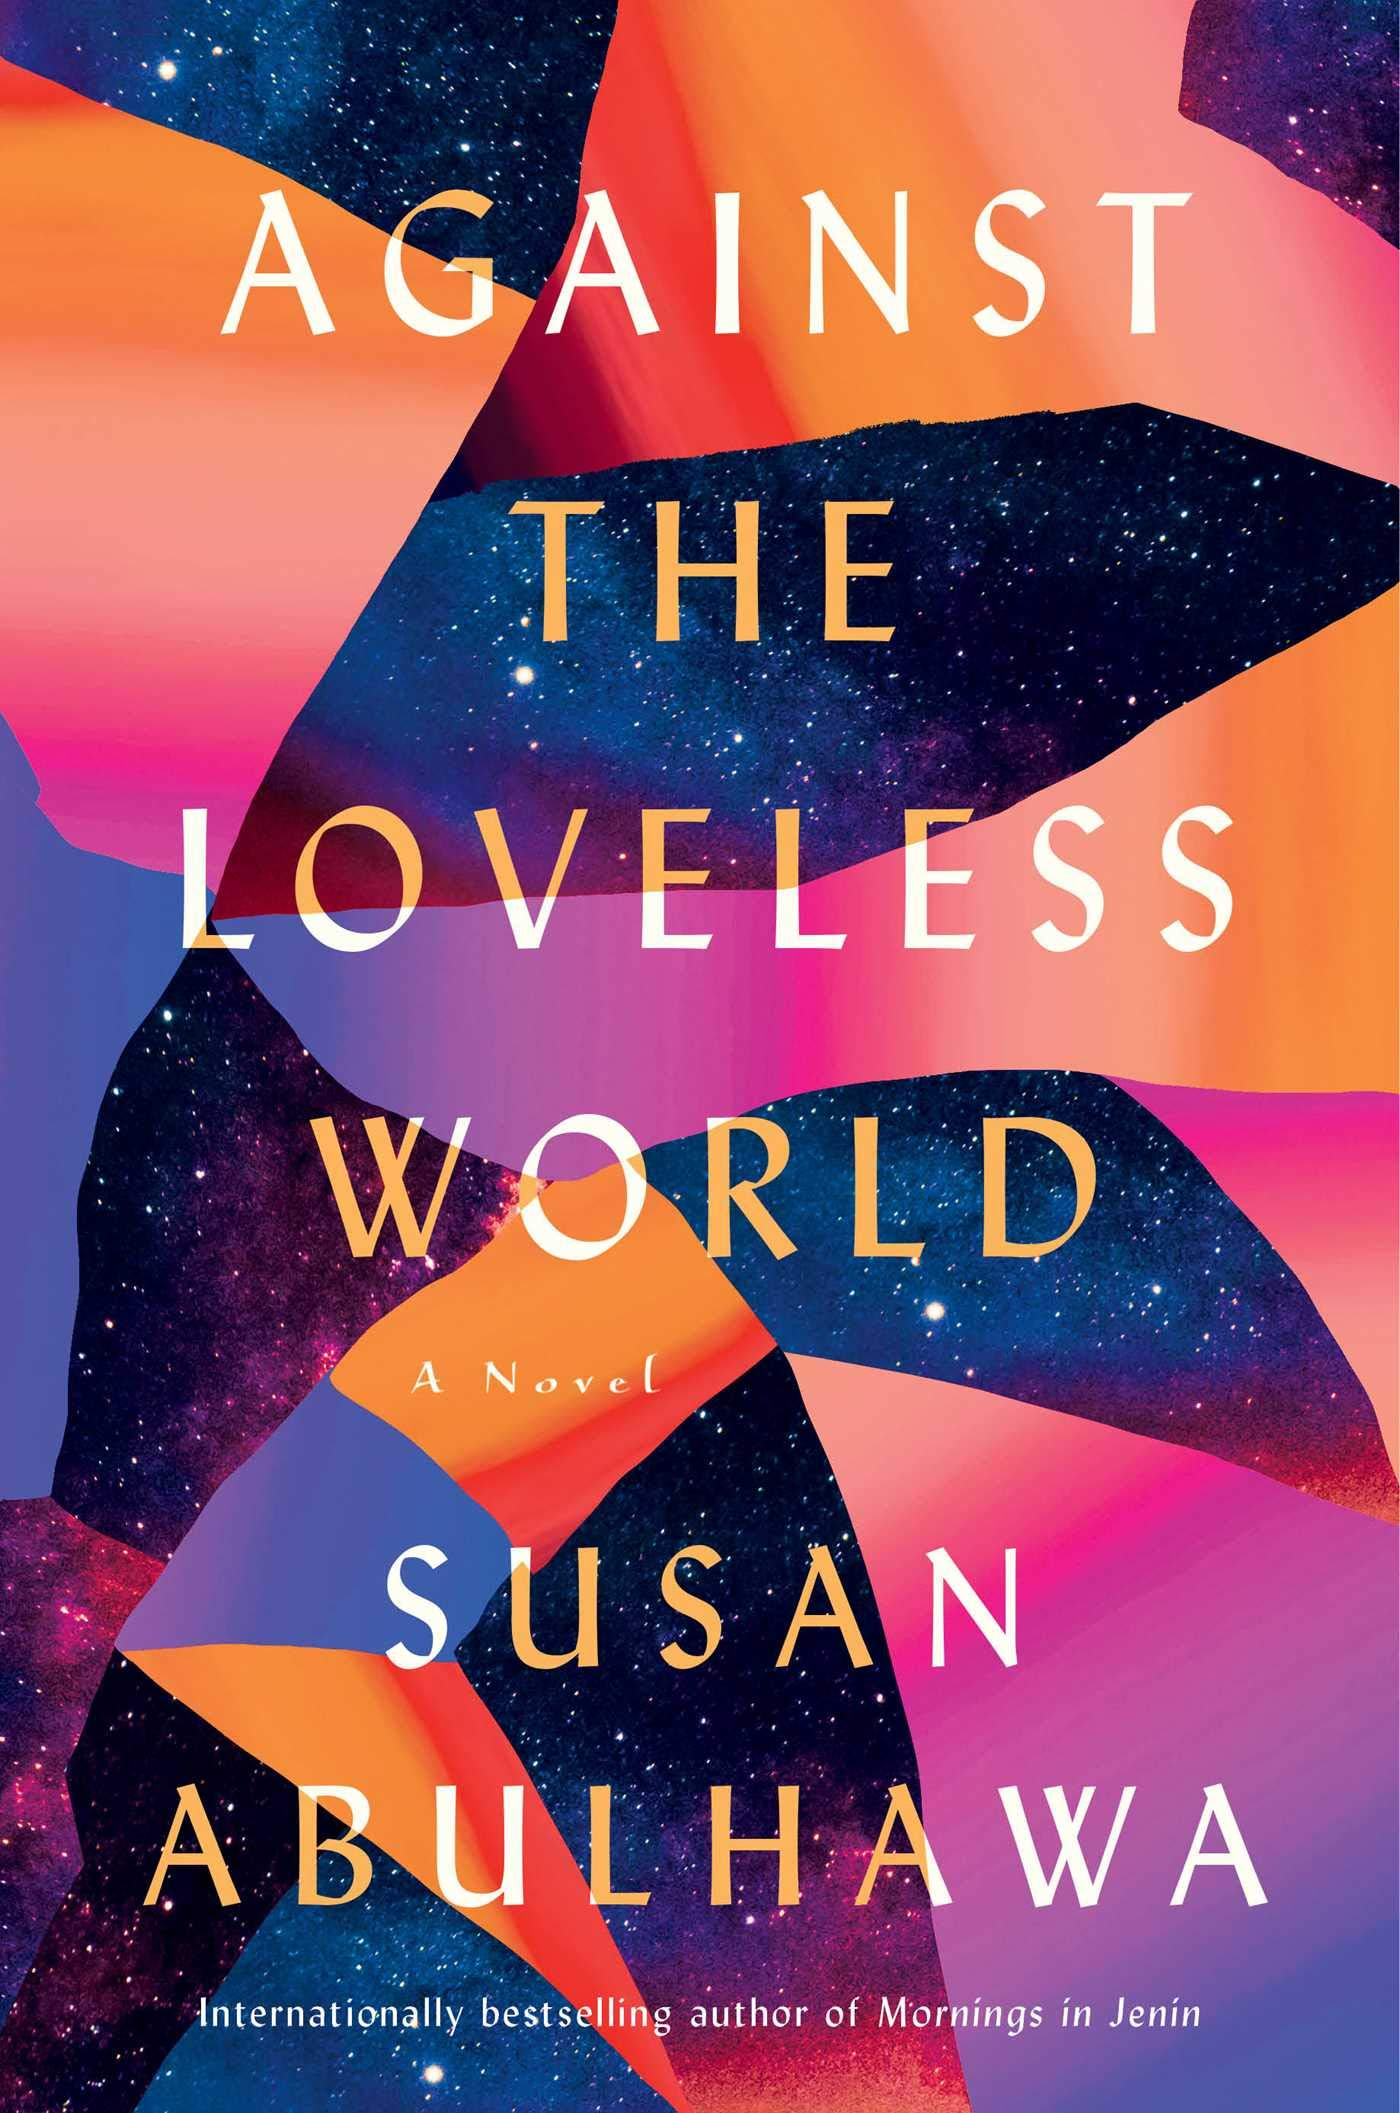 Amazon.com: Against the Loveless World: A Novel (9781982137038): Abulhawa,  Susan: Books